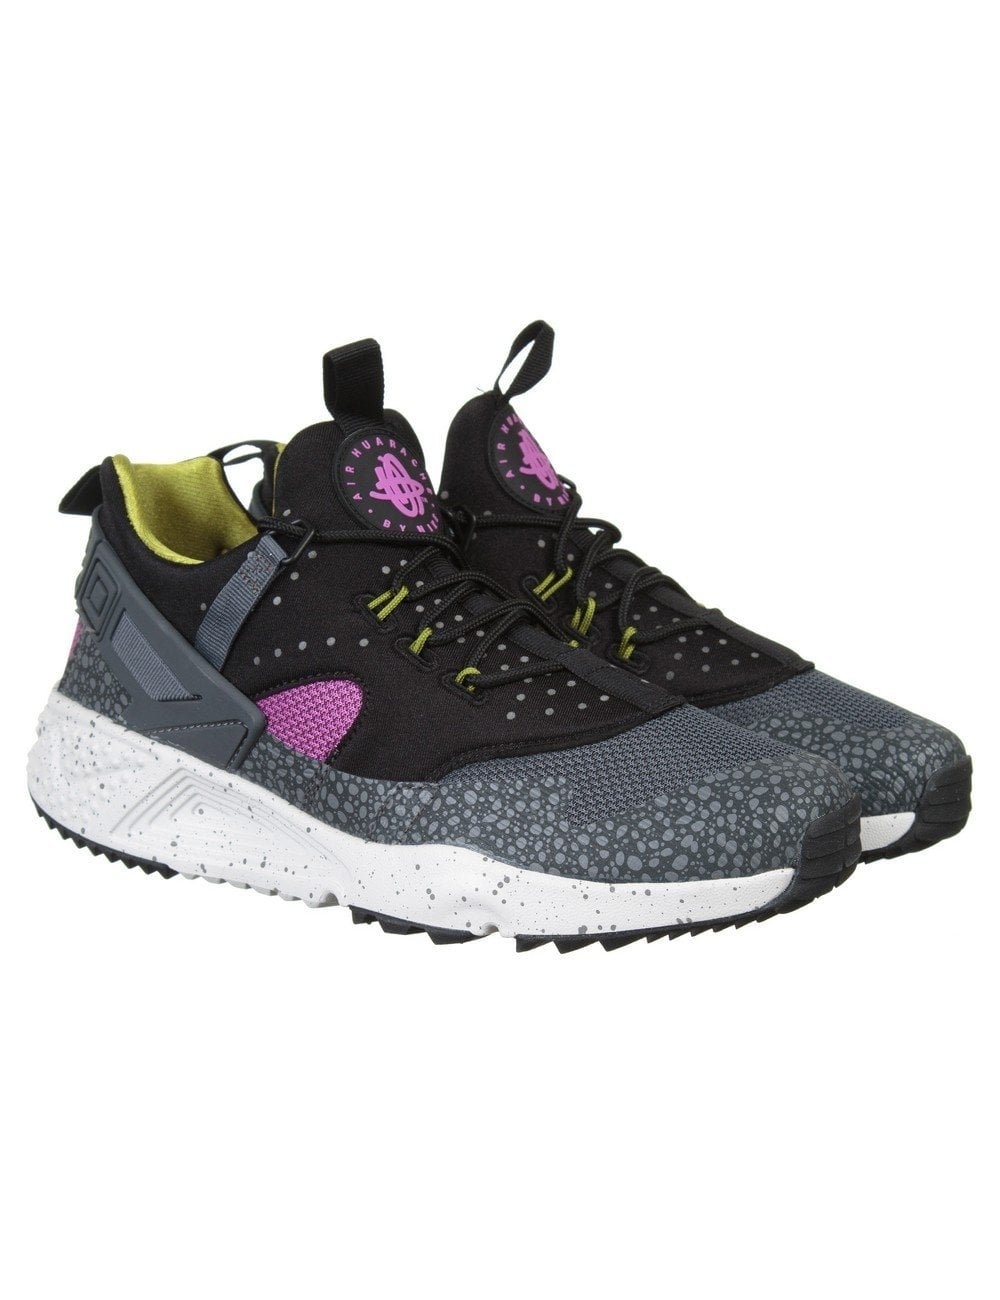 air huarache utility shoes medium berry footwear from fat buddha store uk. Black Bedroom Furniture Sets. Home Design Ideas